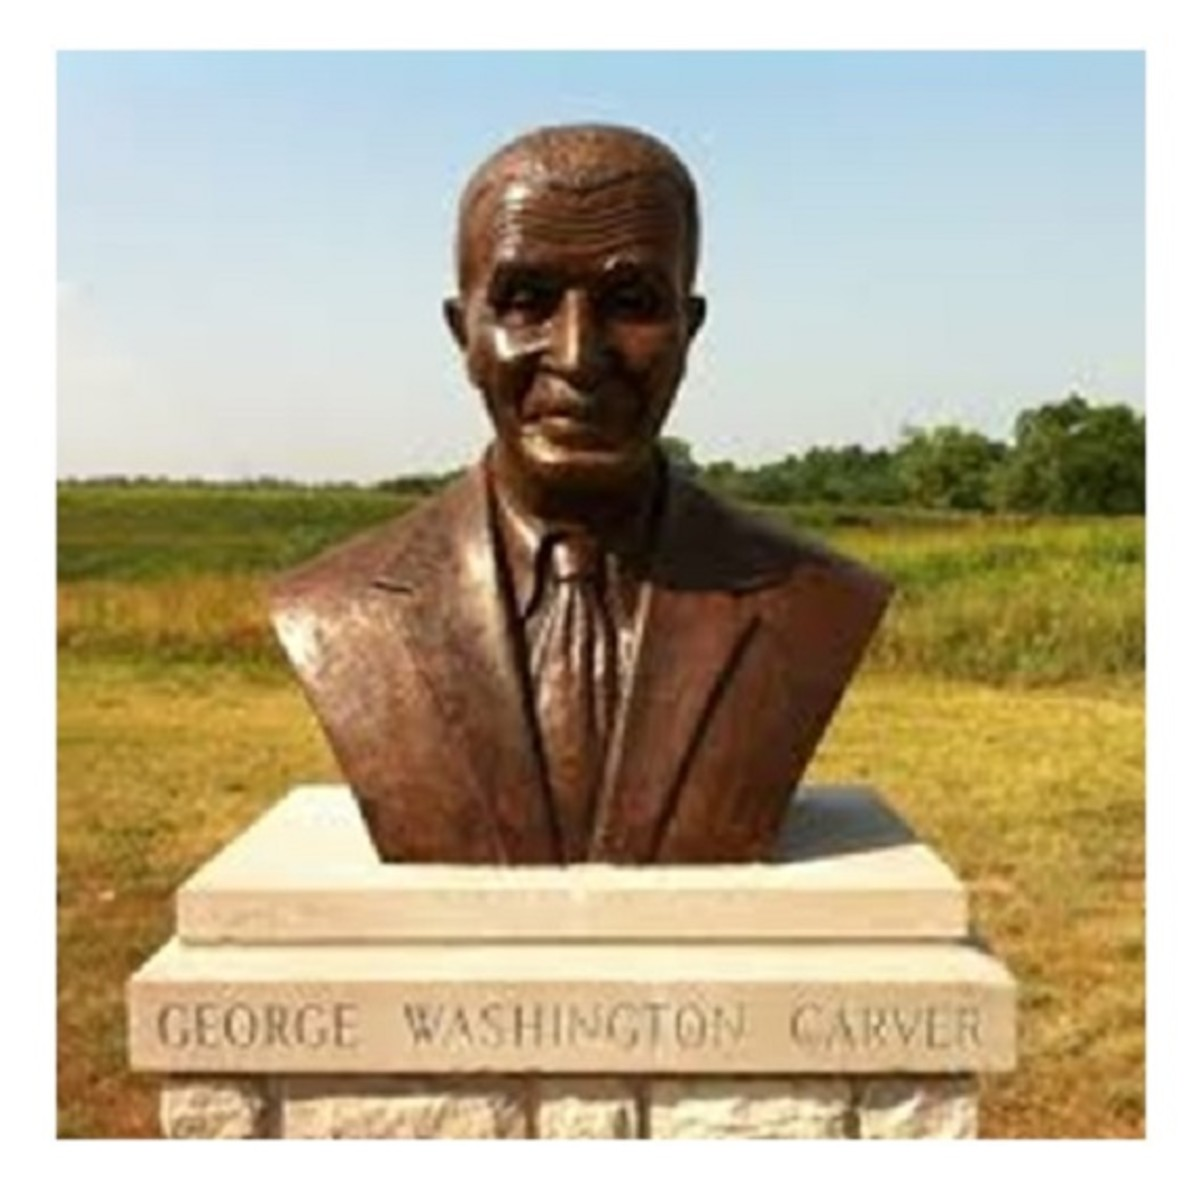 George Washington Carver's Monument